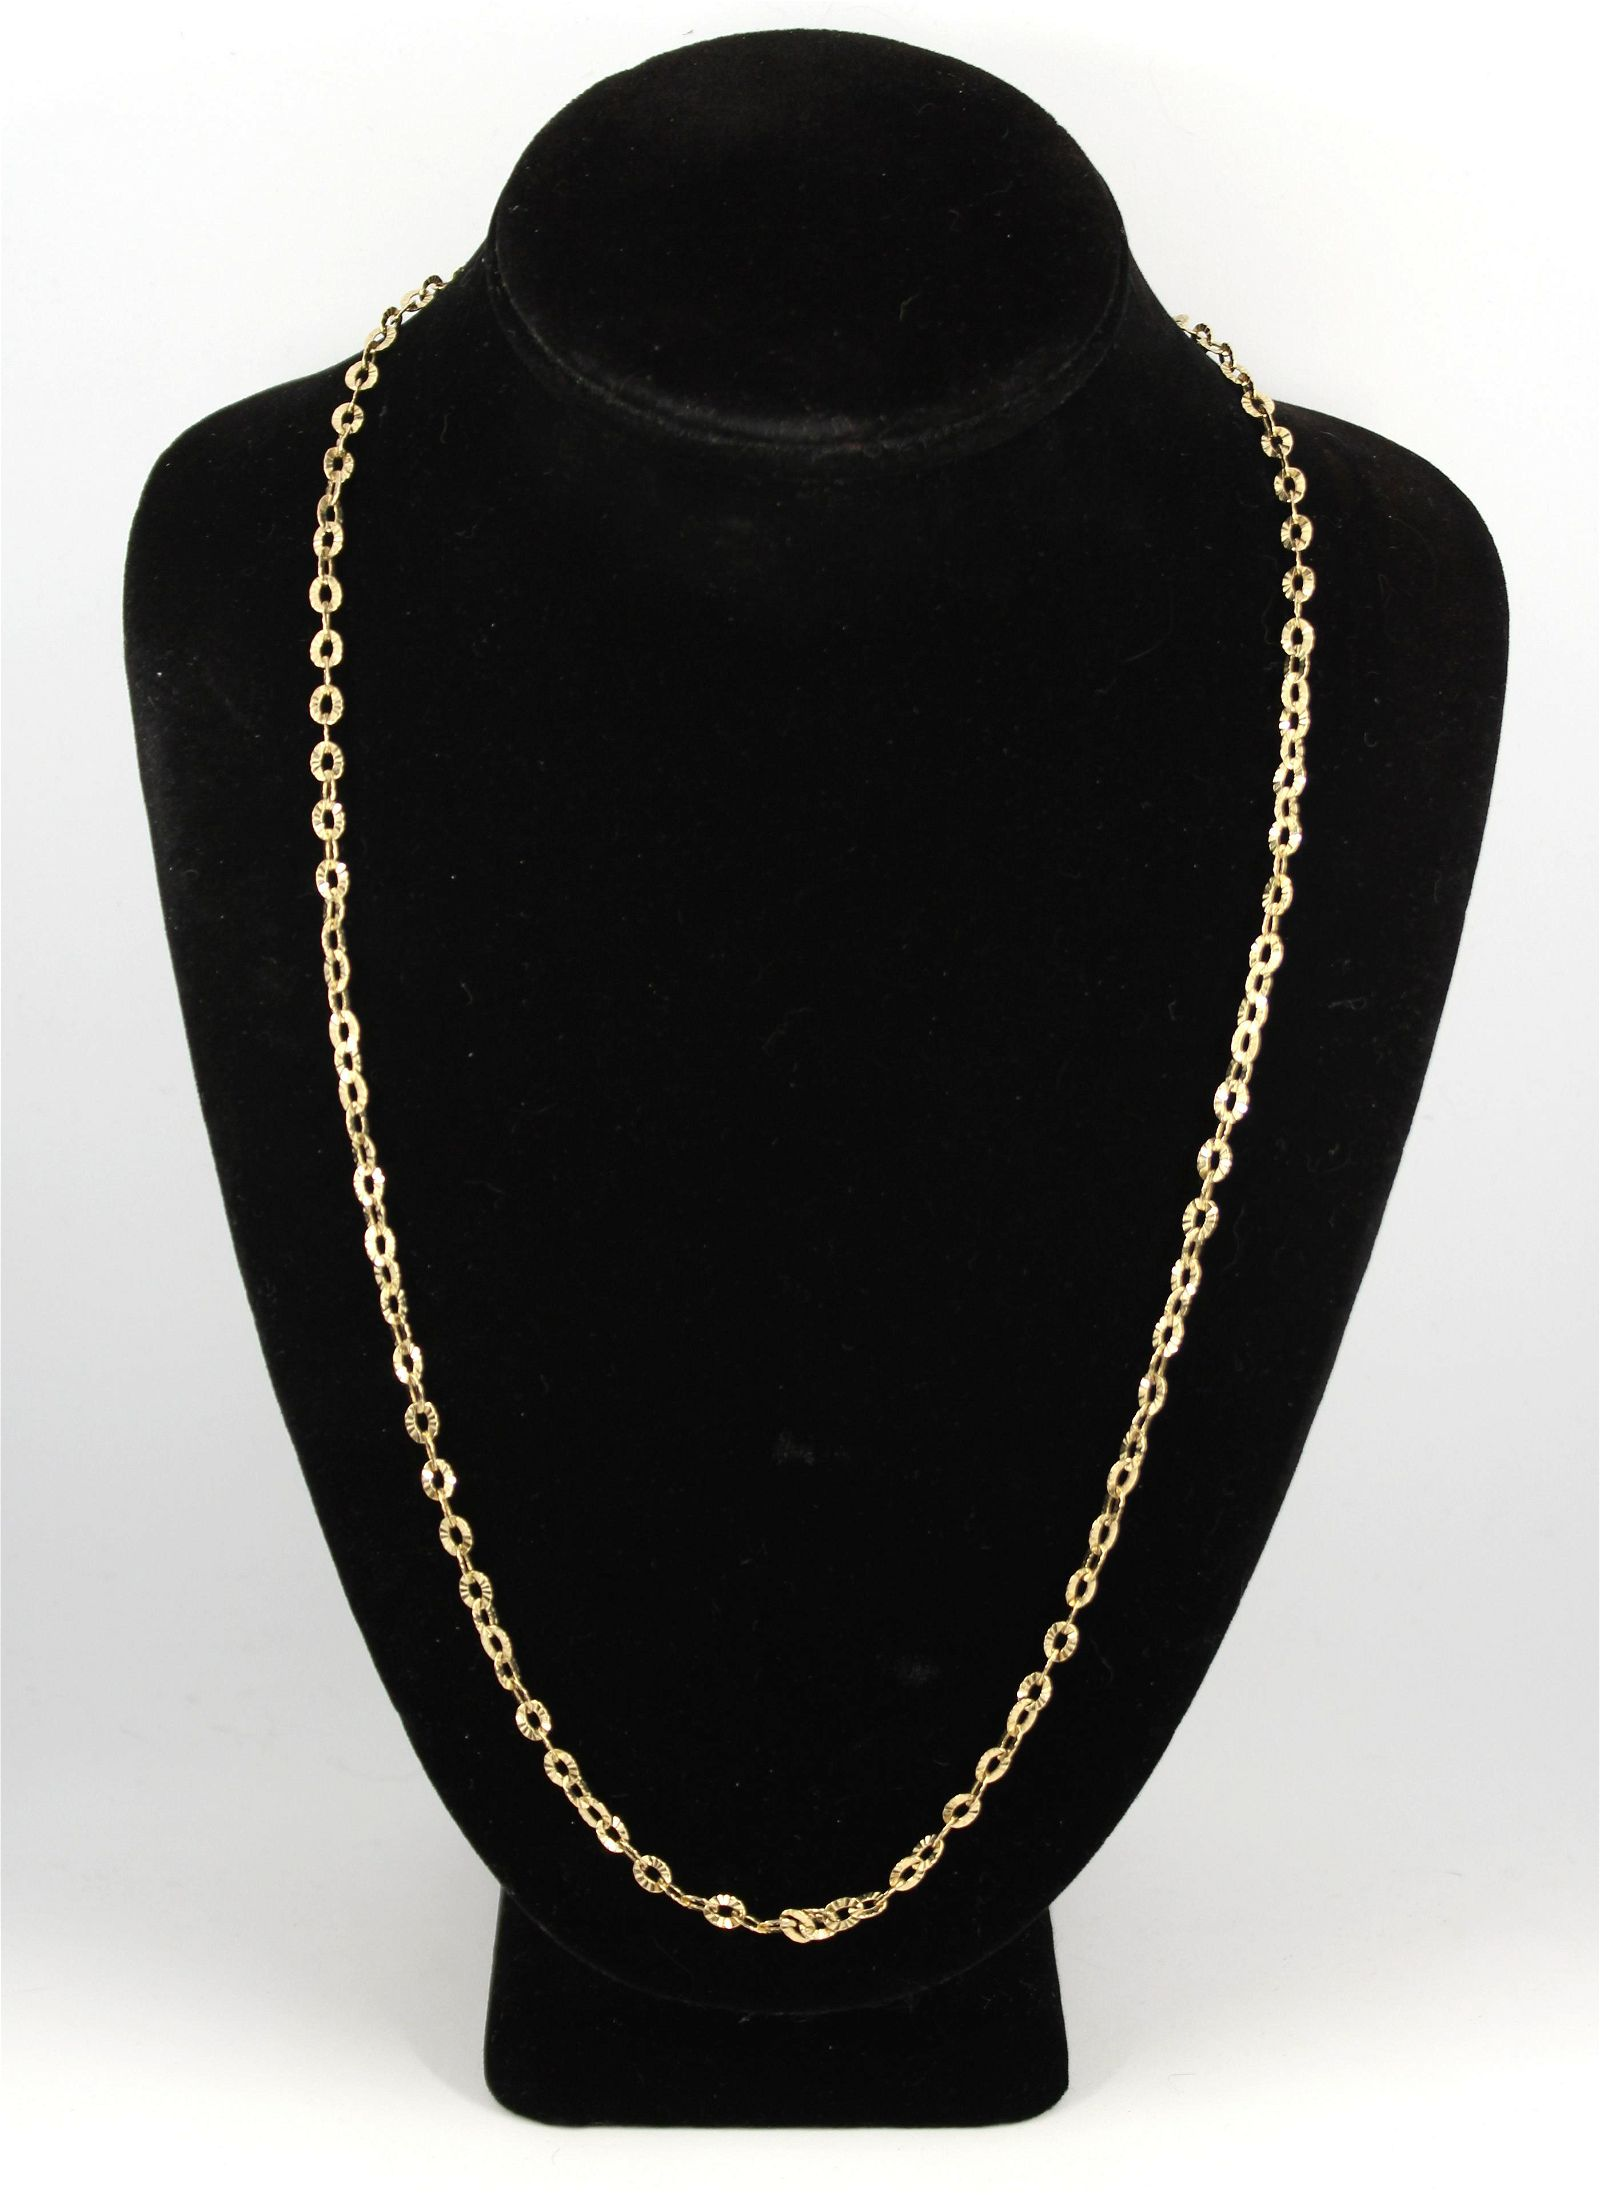 Modern Italian 14K Yellow Gold Chain Link Necklace